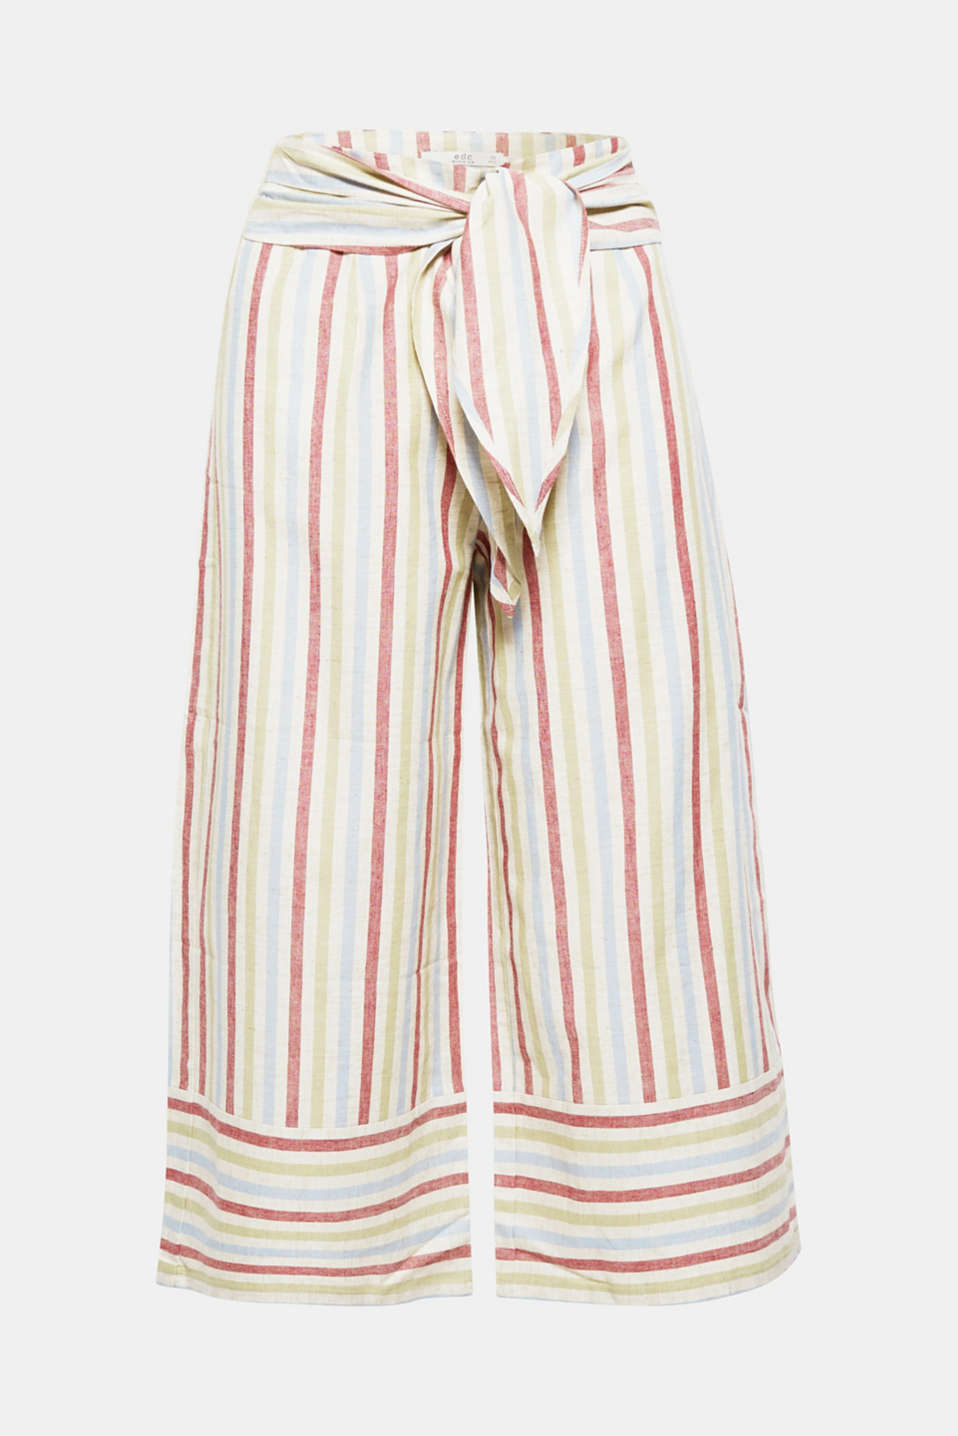 The wide, figure-skimming trouser leg and cooling percentage of linen make these striped culottes the perfect piece for warmer weather